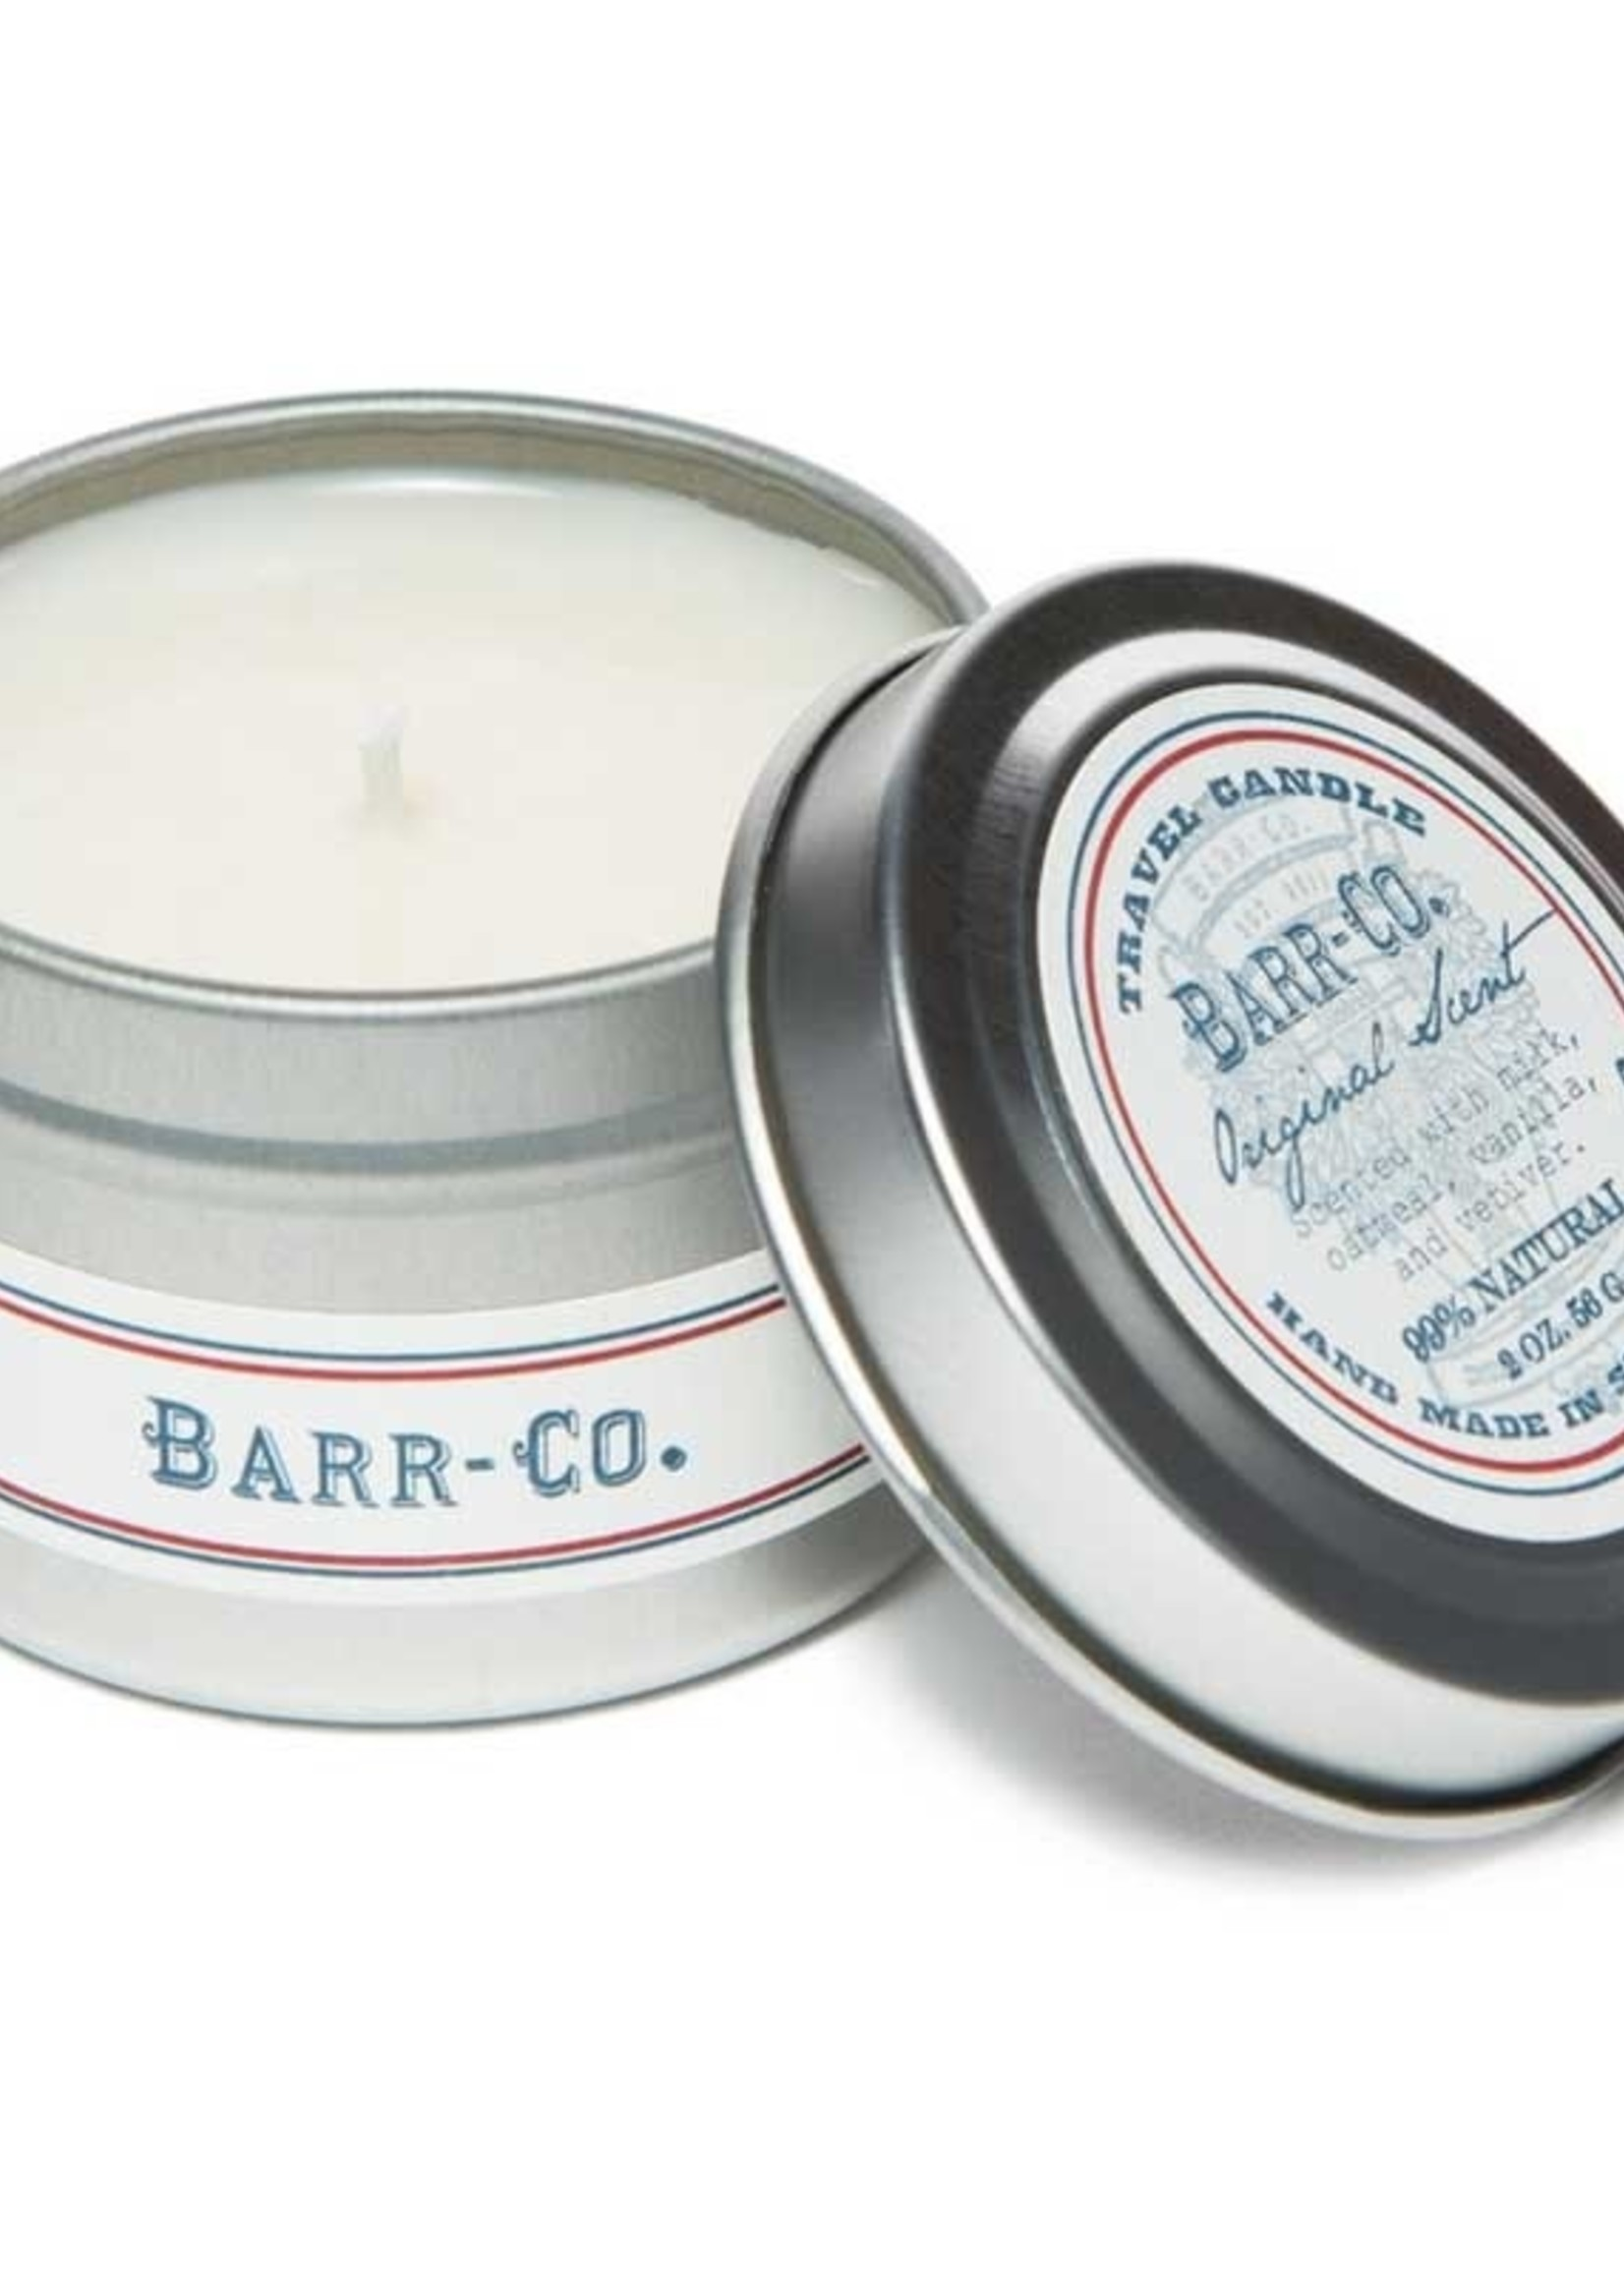 Barr-Co Barr Co Travel Candle